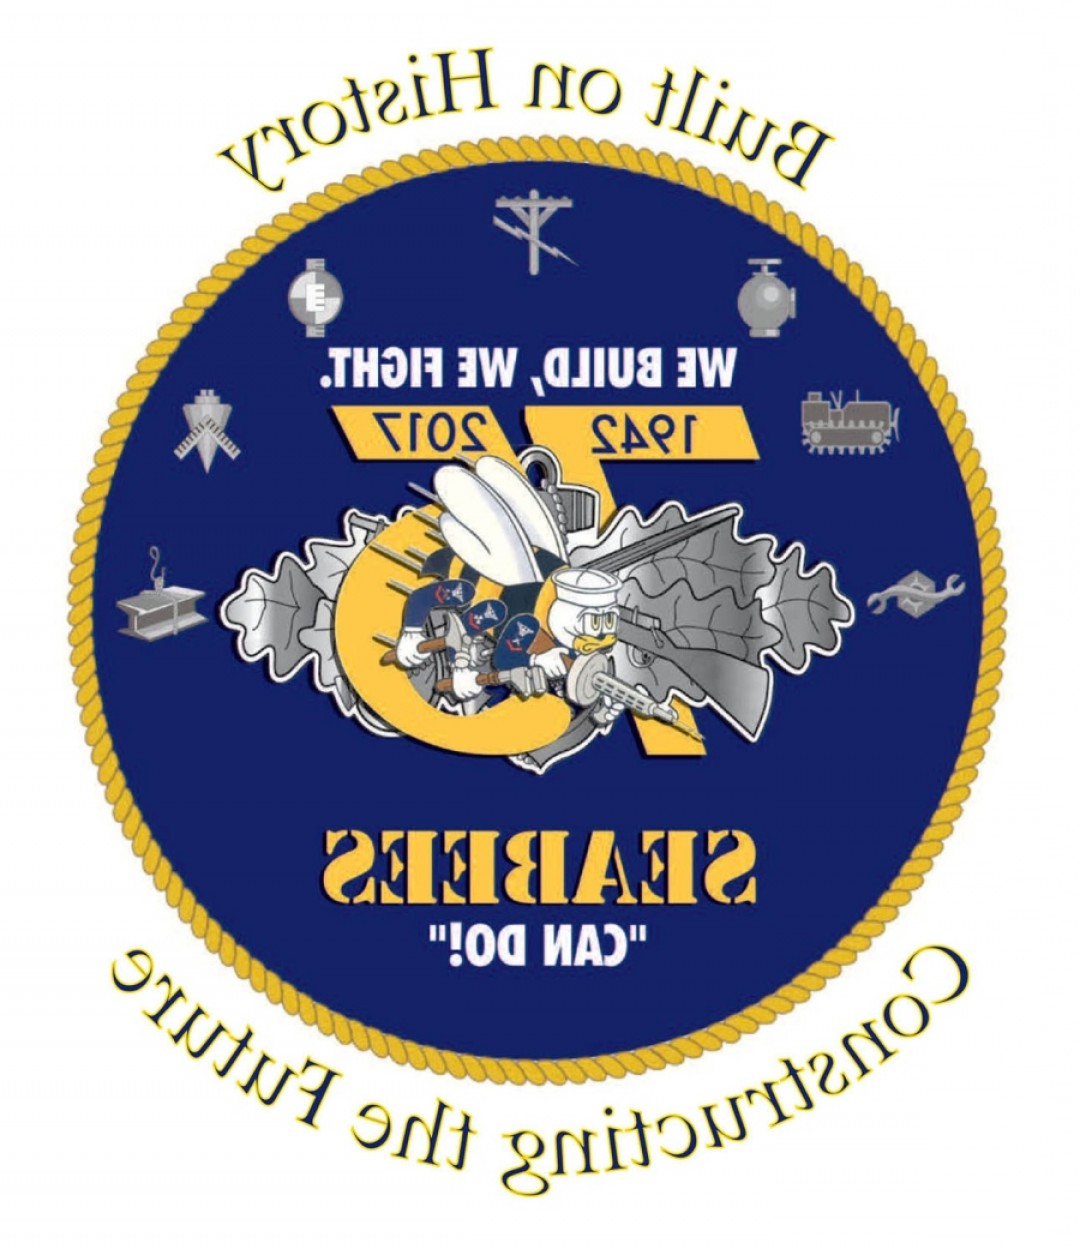 U S. Navy Logo Vector: Seabees Get Updated Logo Theme For Th Anniversary